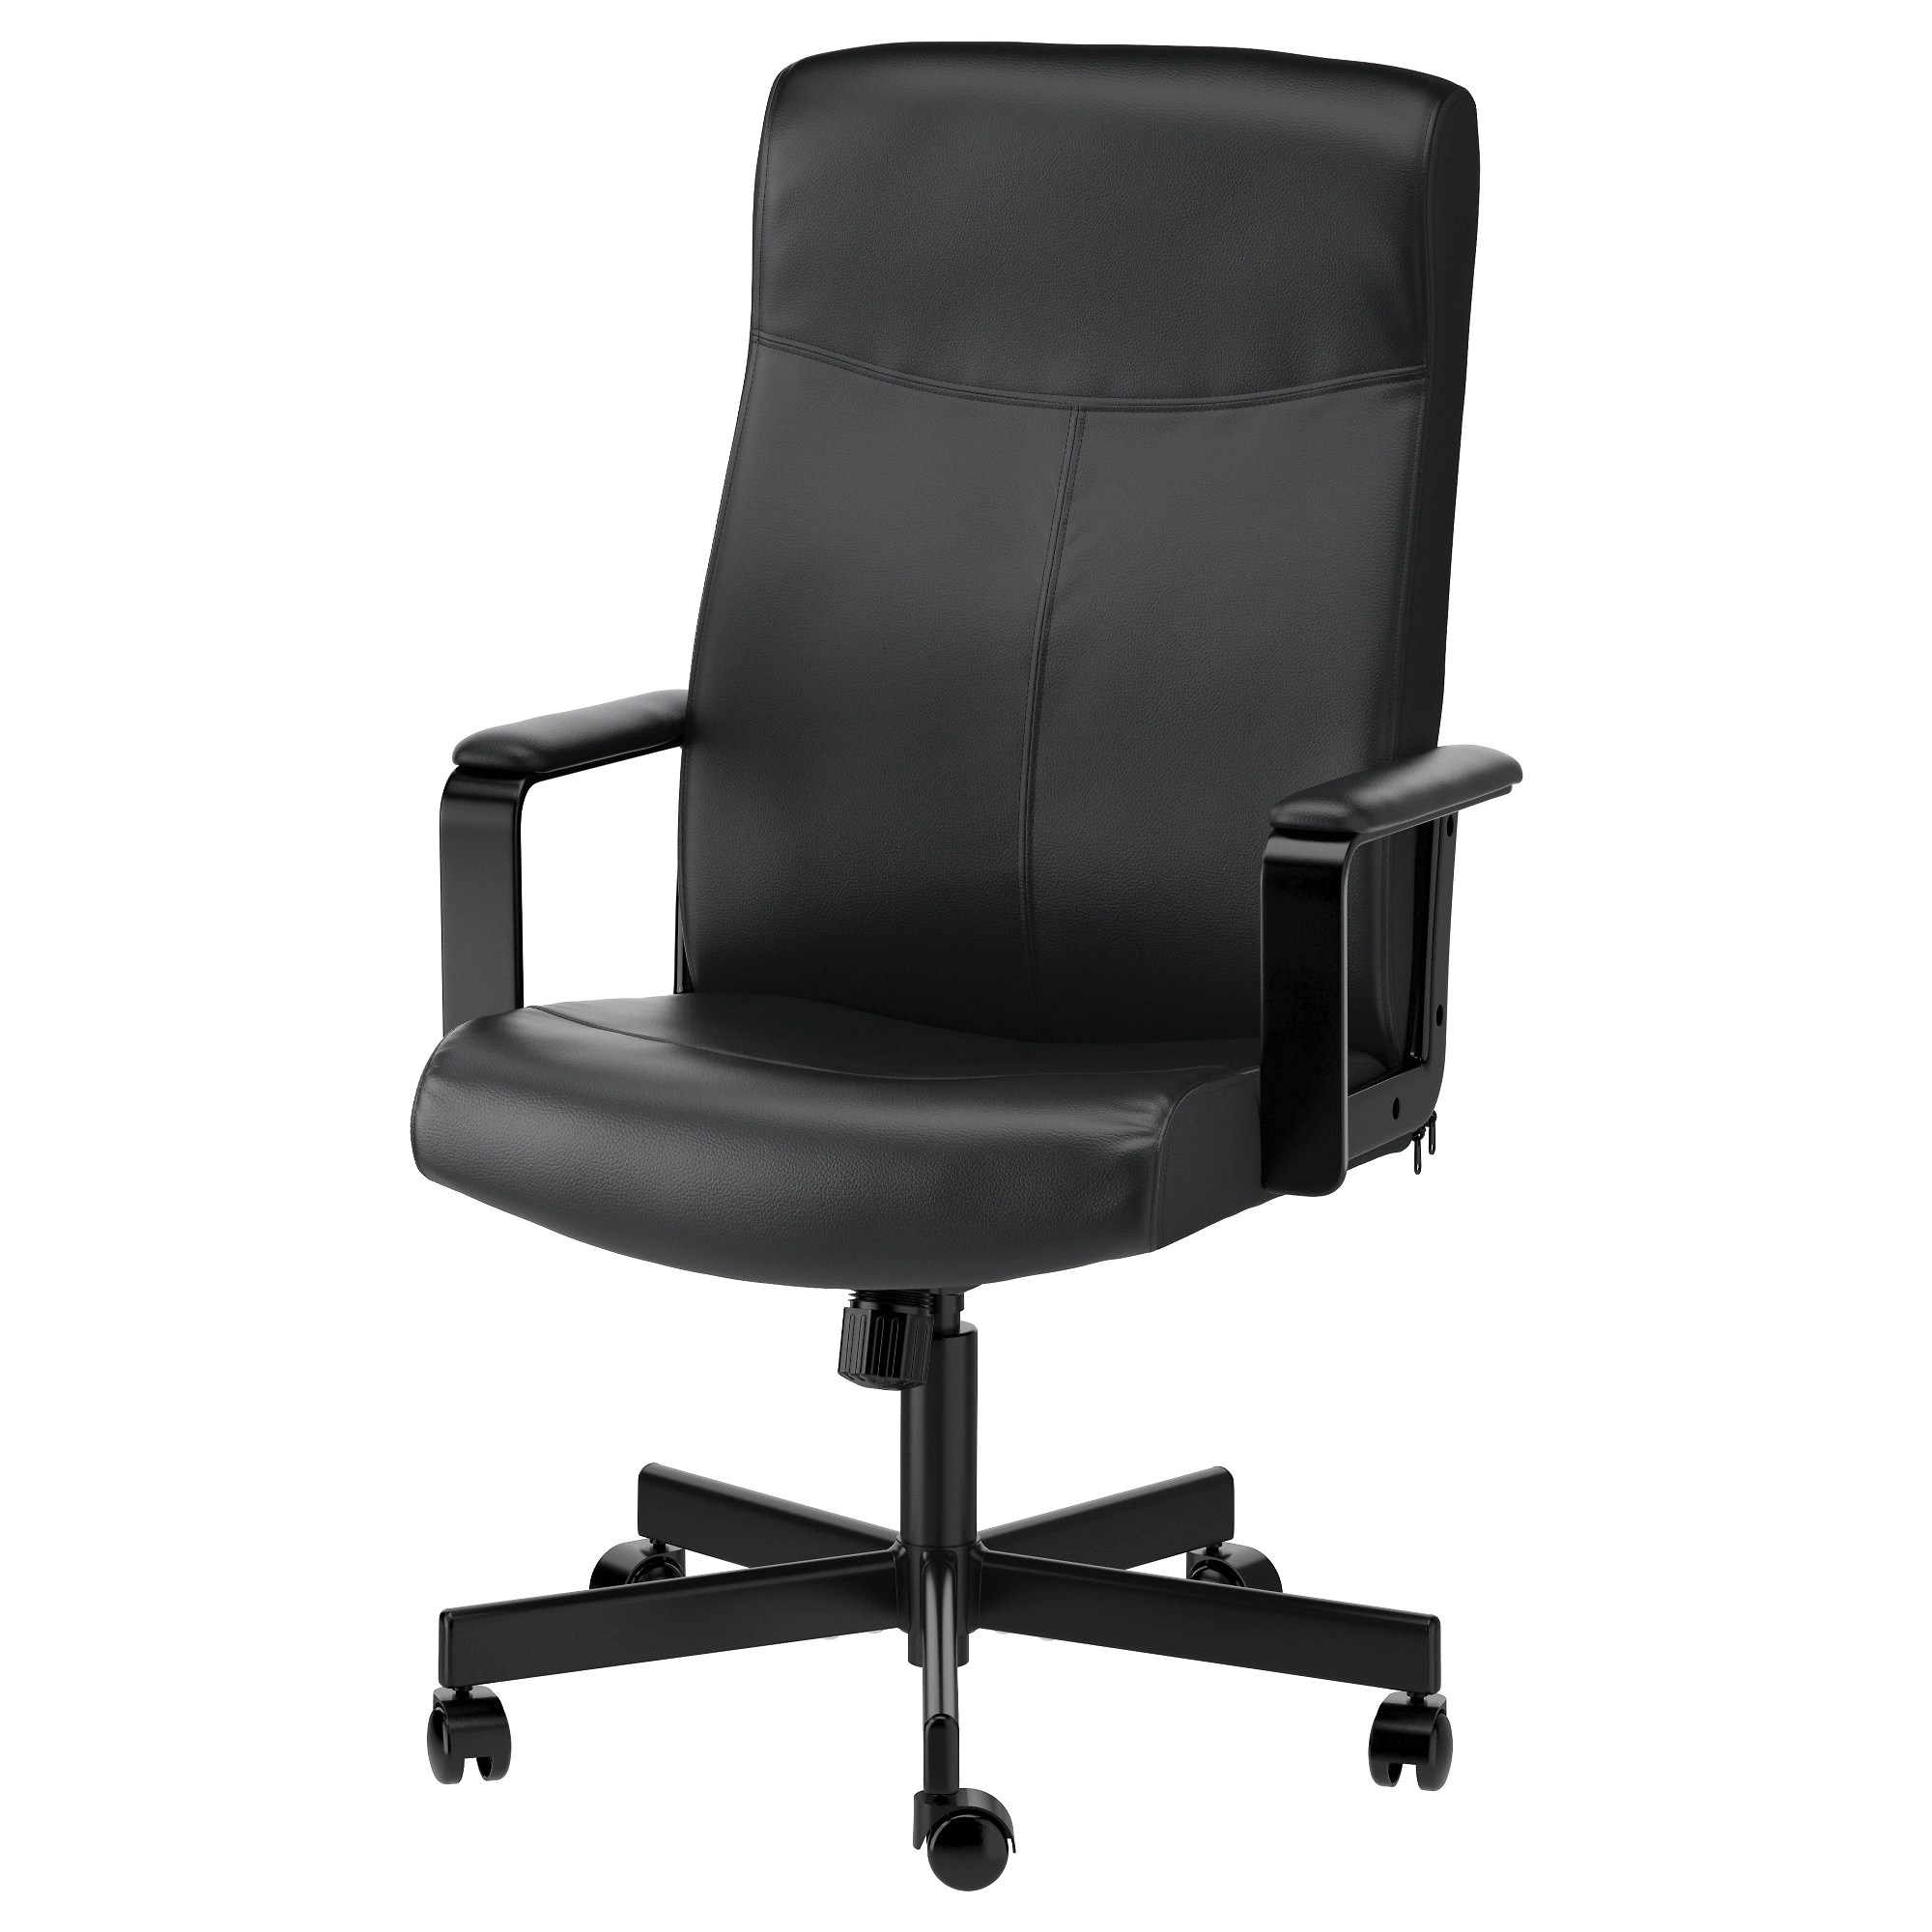 ikea office chair white cover sashes millberget swivel bomstad black inter systems b v 1999 2018 privacy policy responsible disclosure